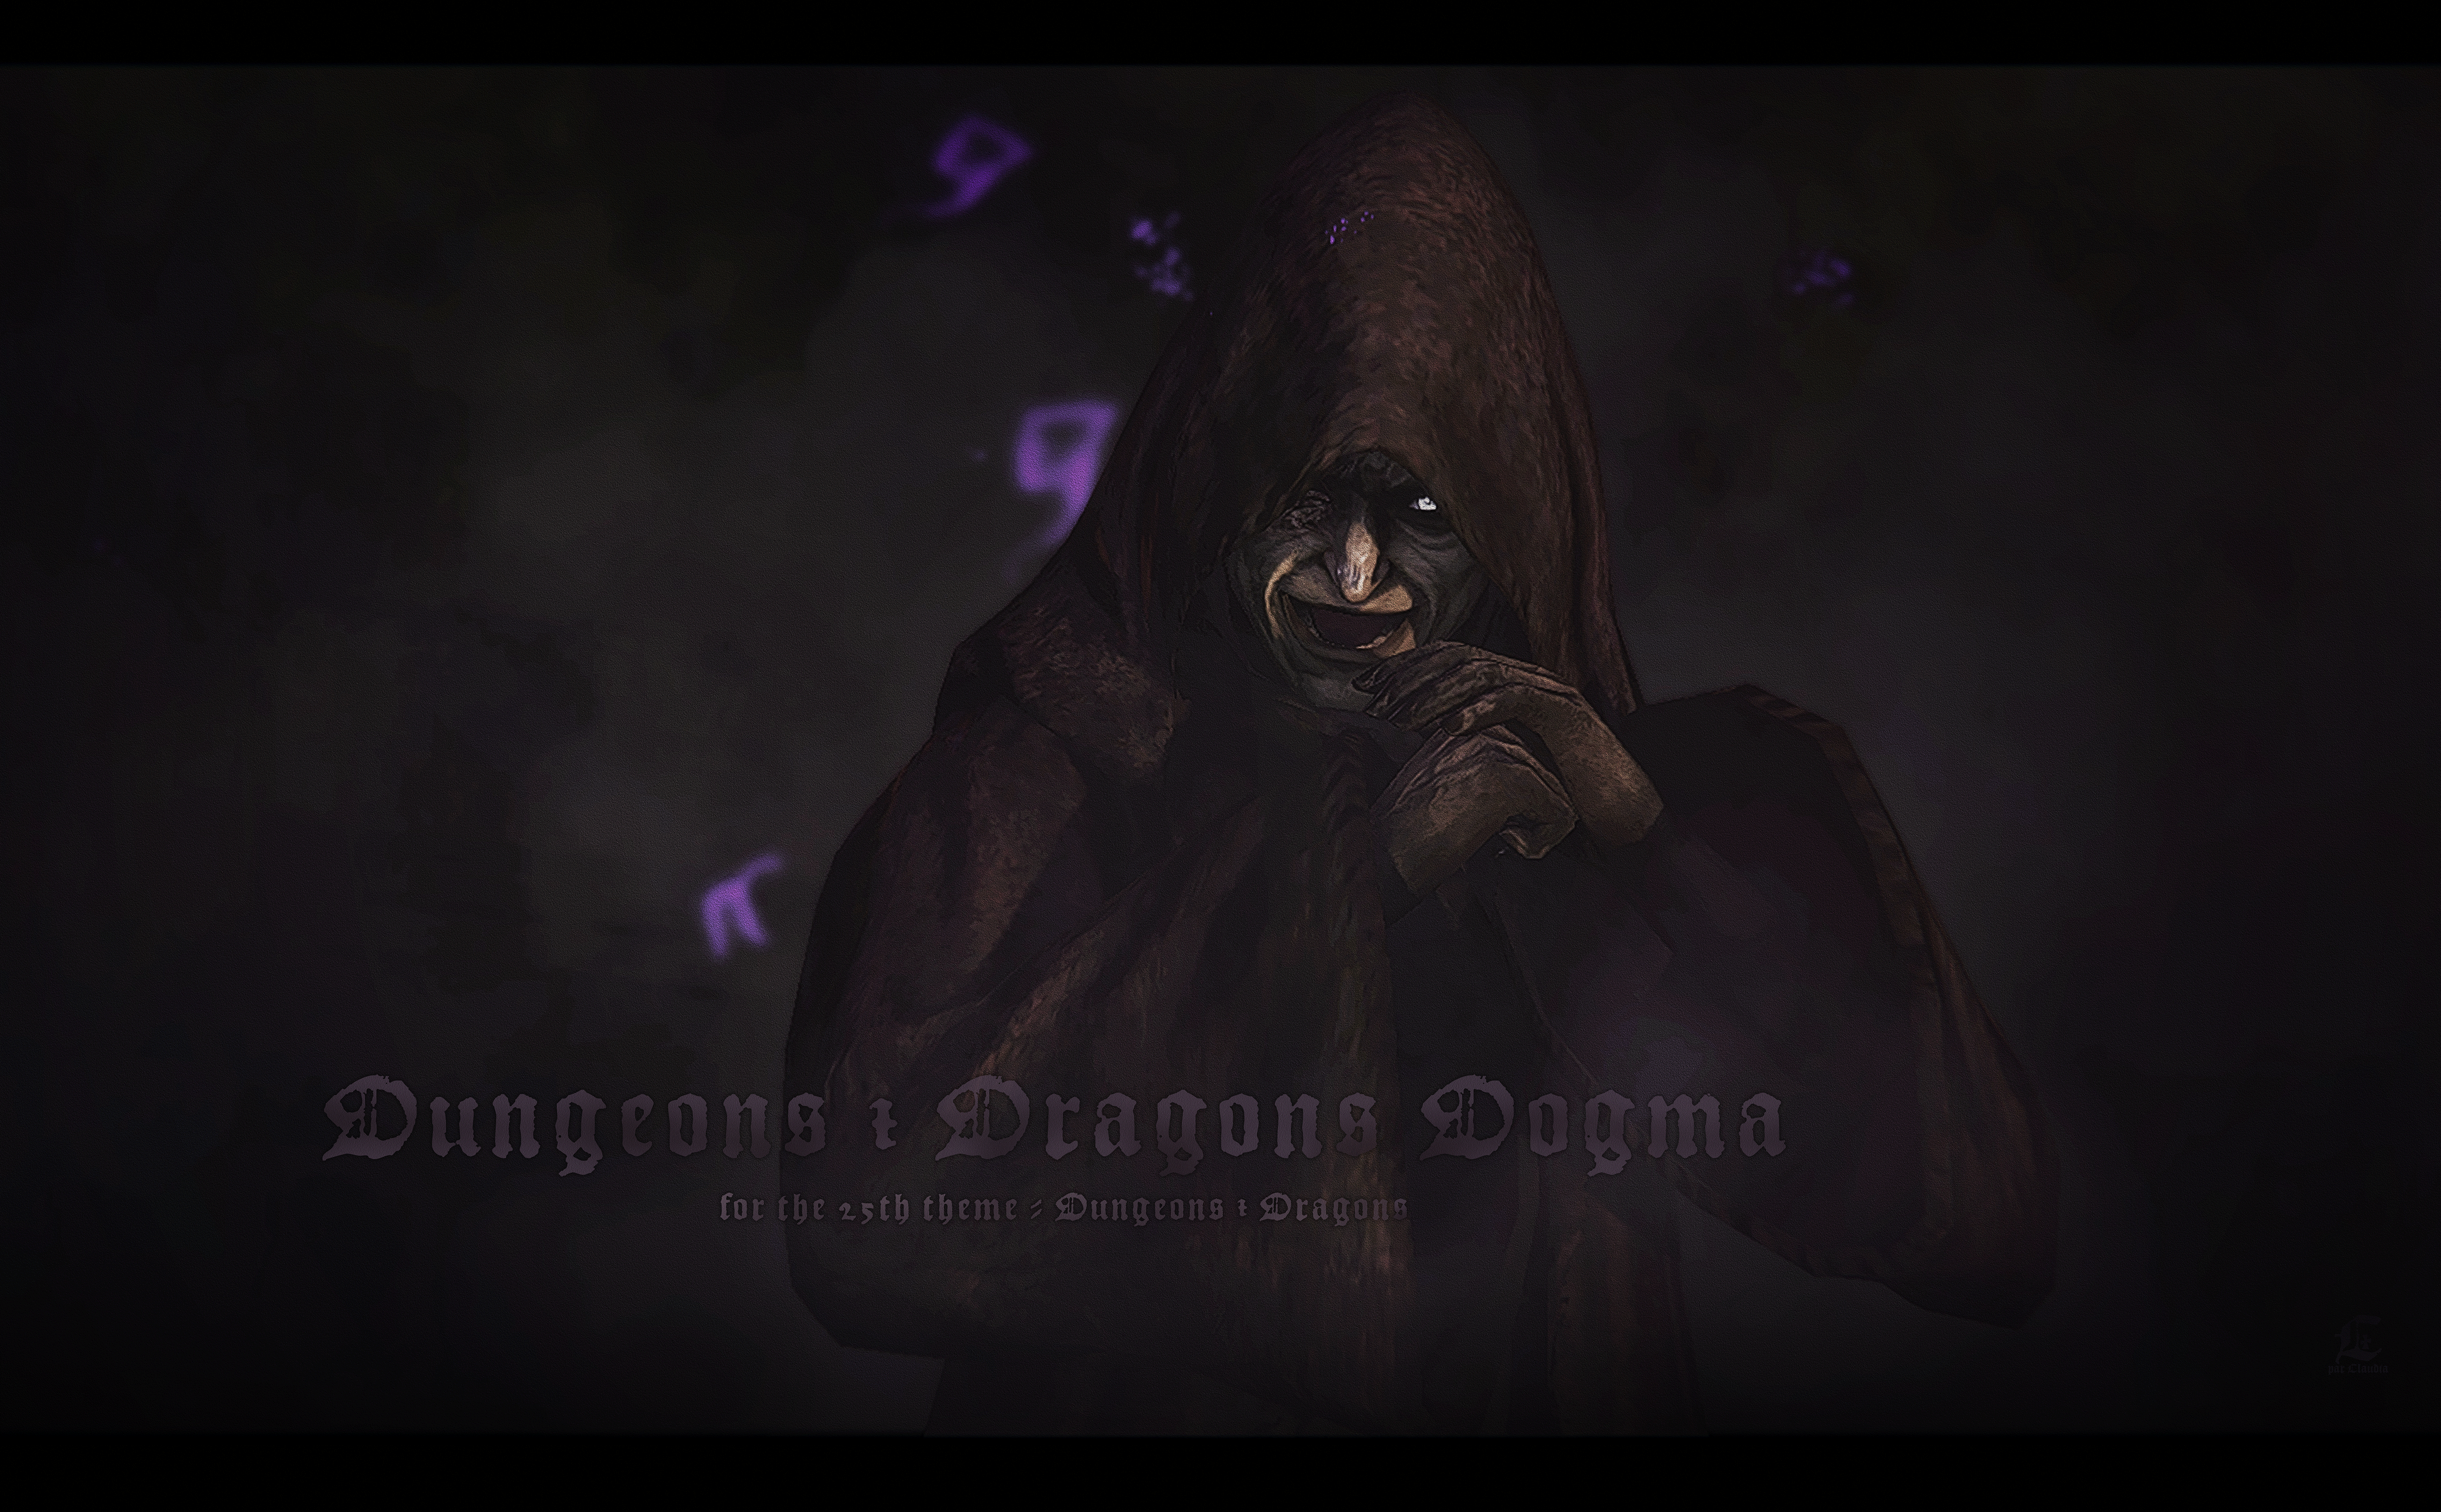 25th theme - Dungeons and Dragons Dogma